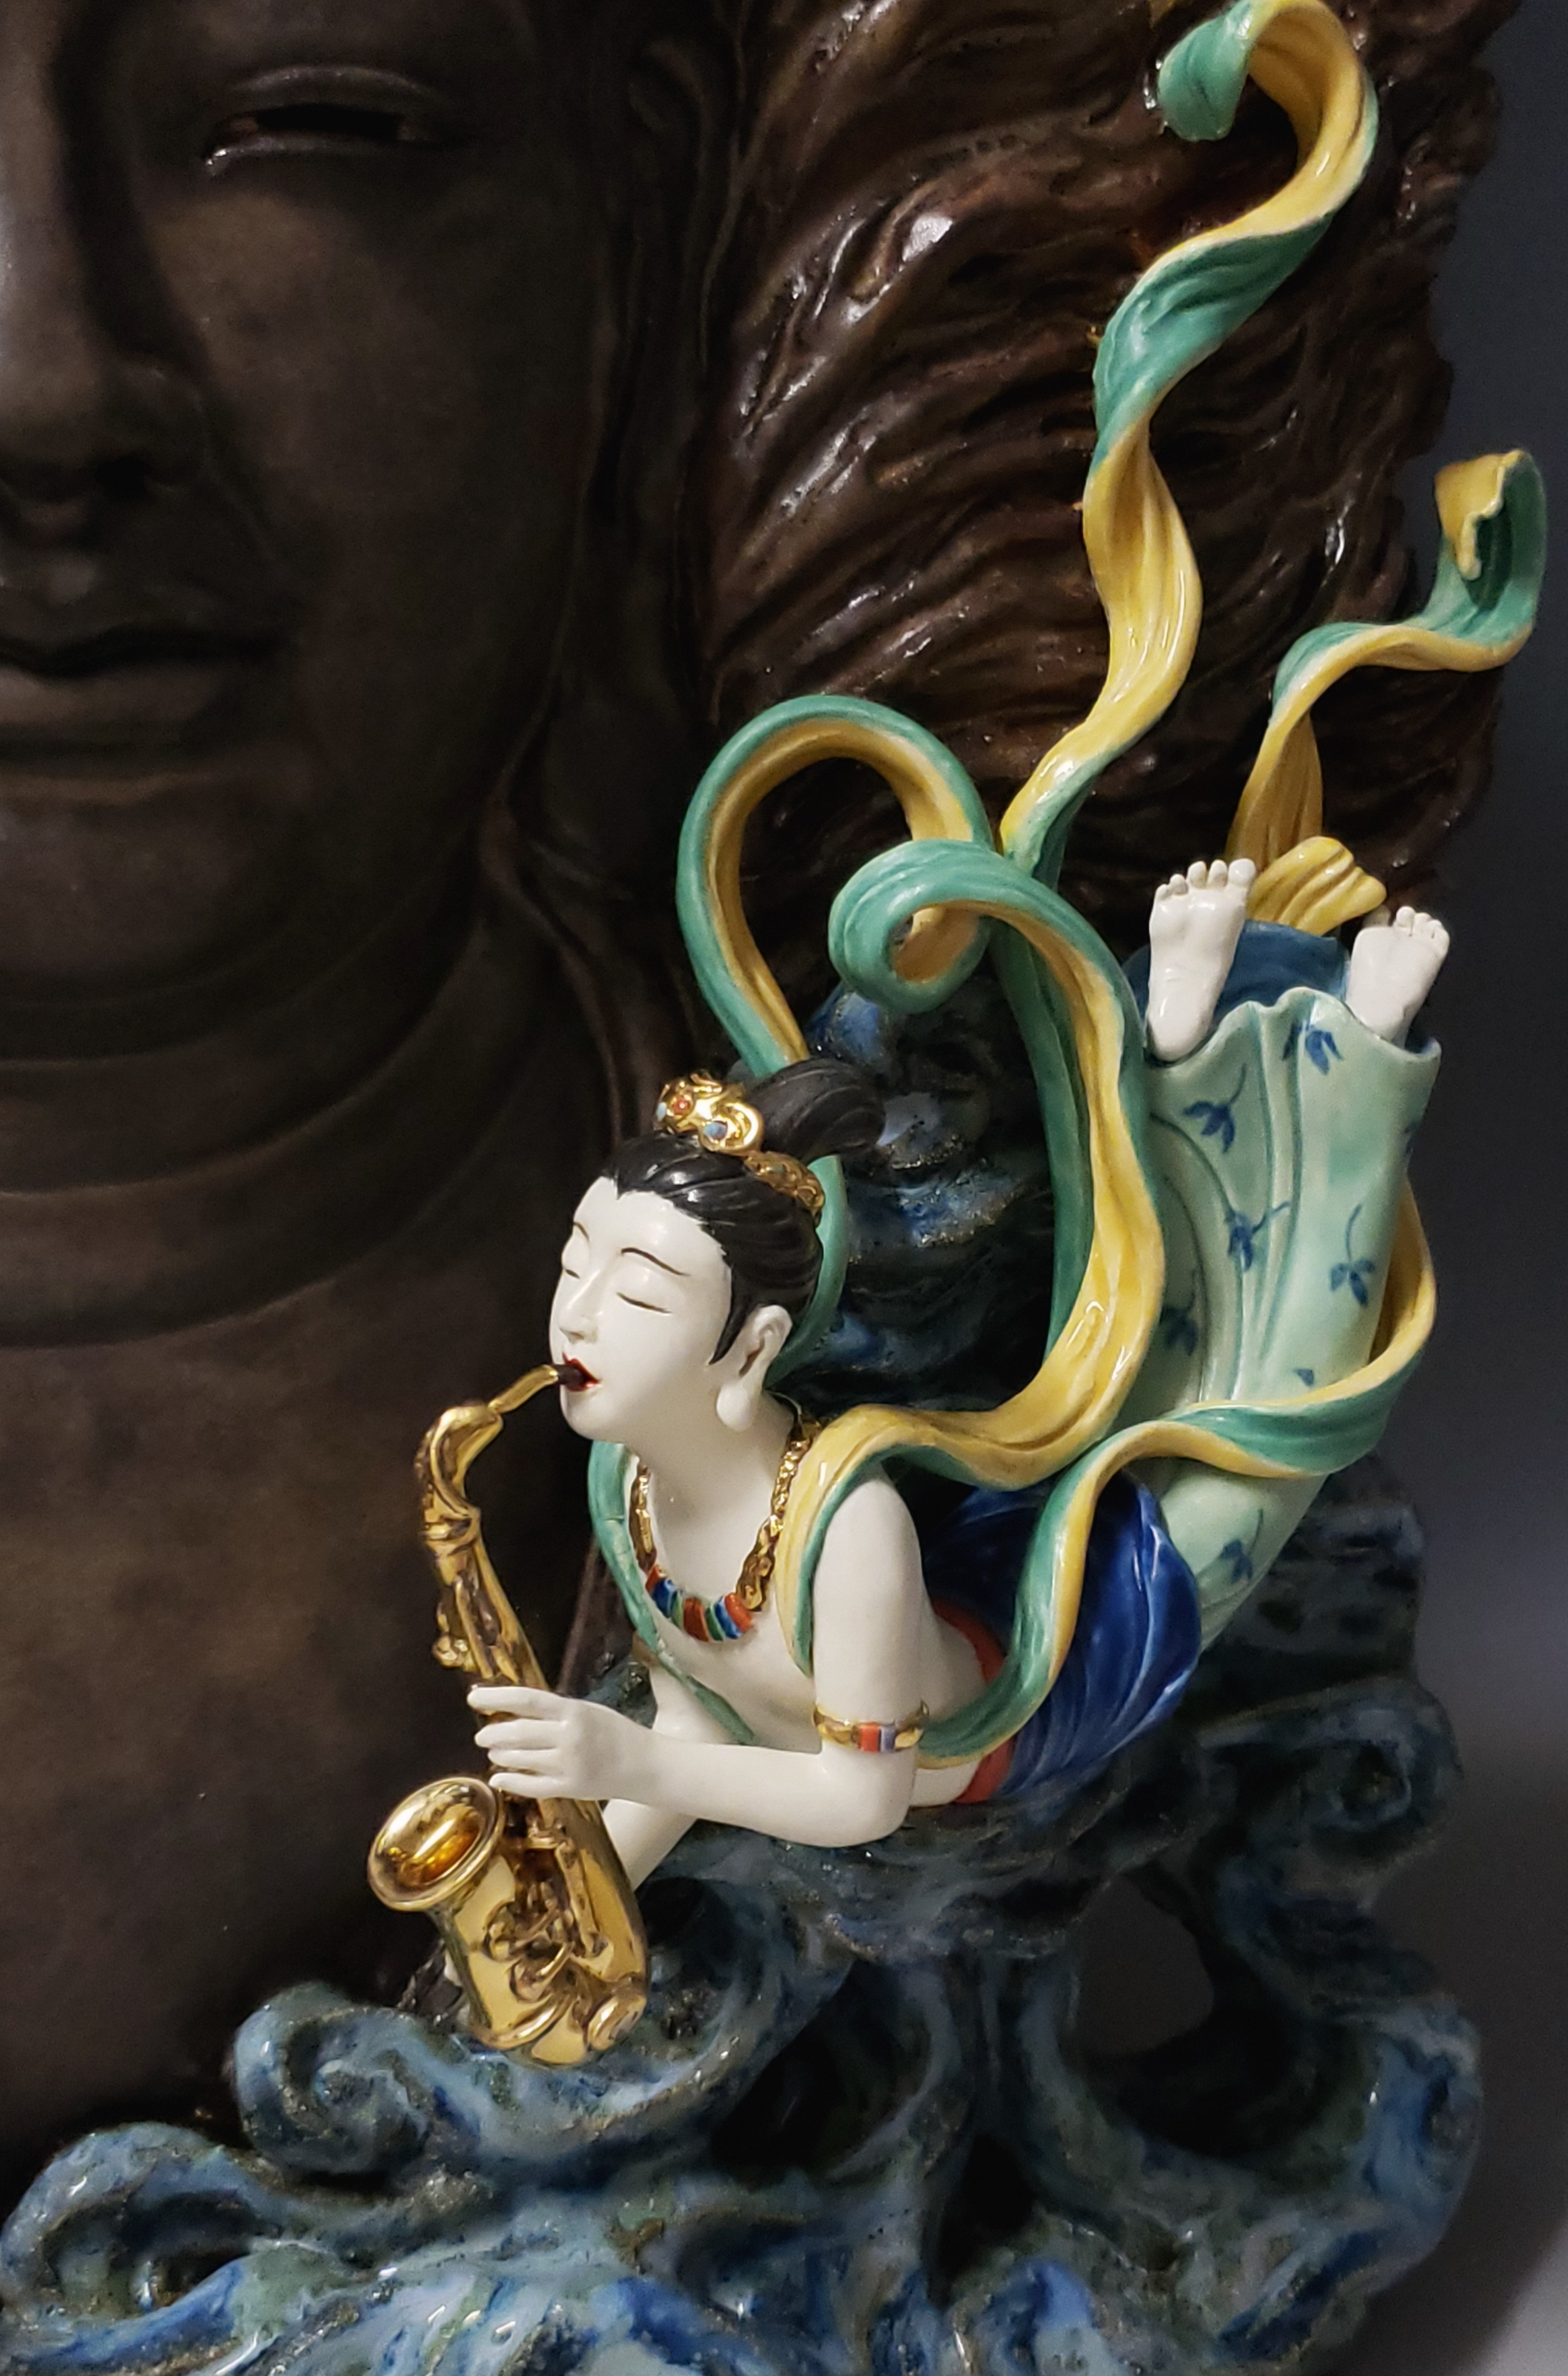 Feitian with Saxophone (Detail)